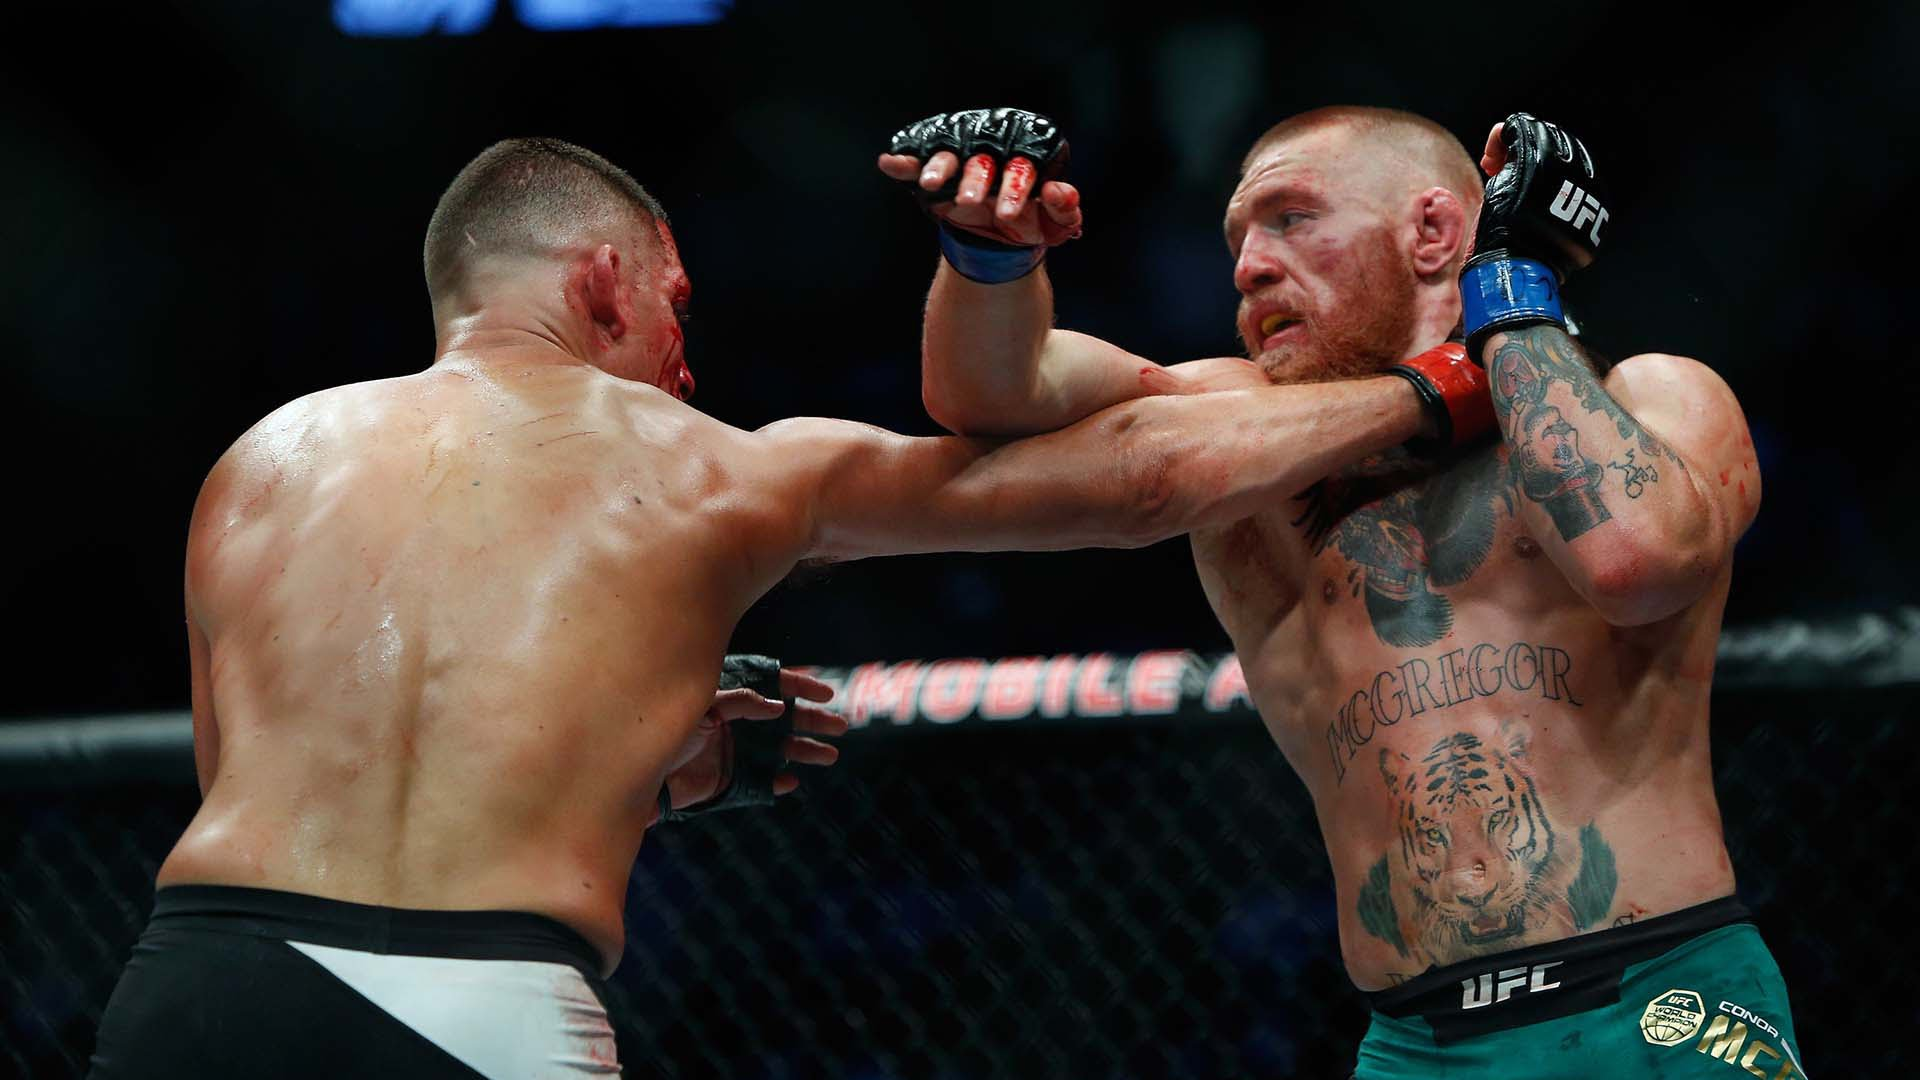 John Kavanagh, McGregor vs. Diaz: Will there be a decisive fight?